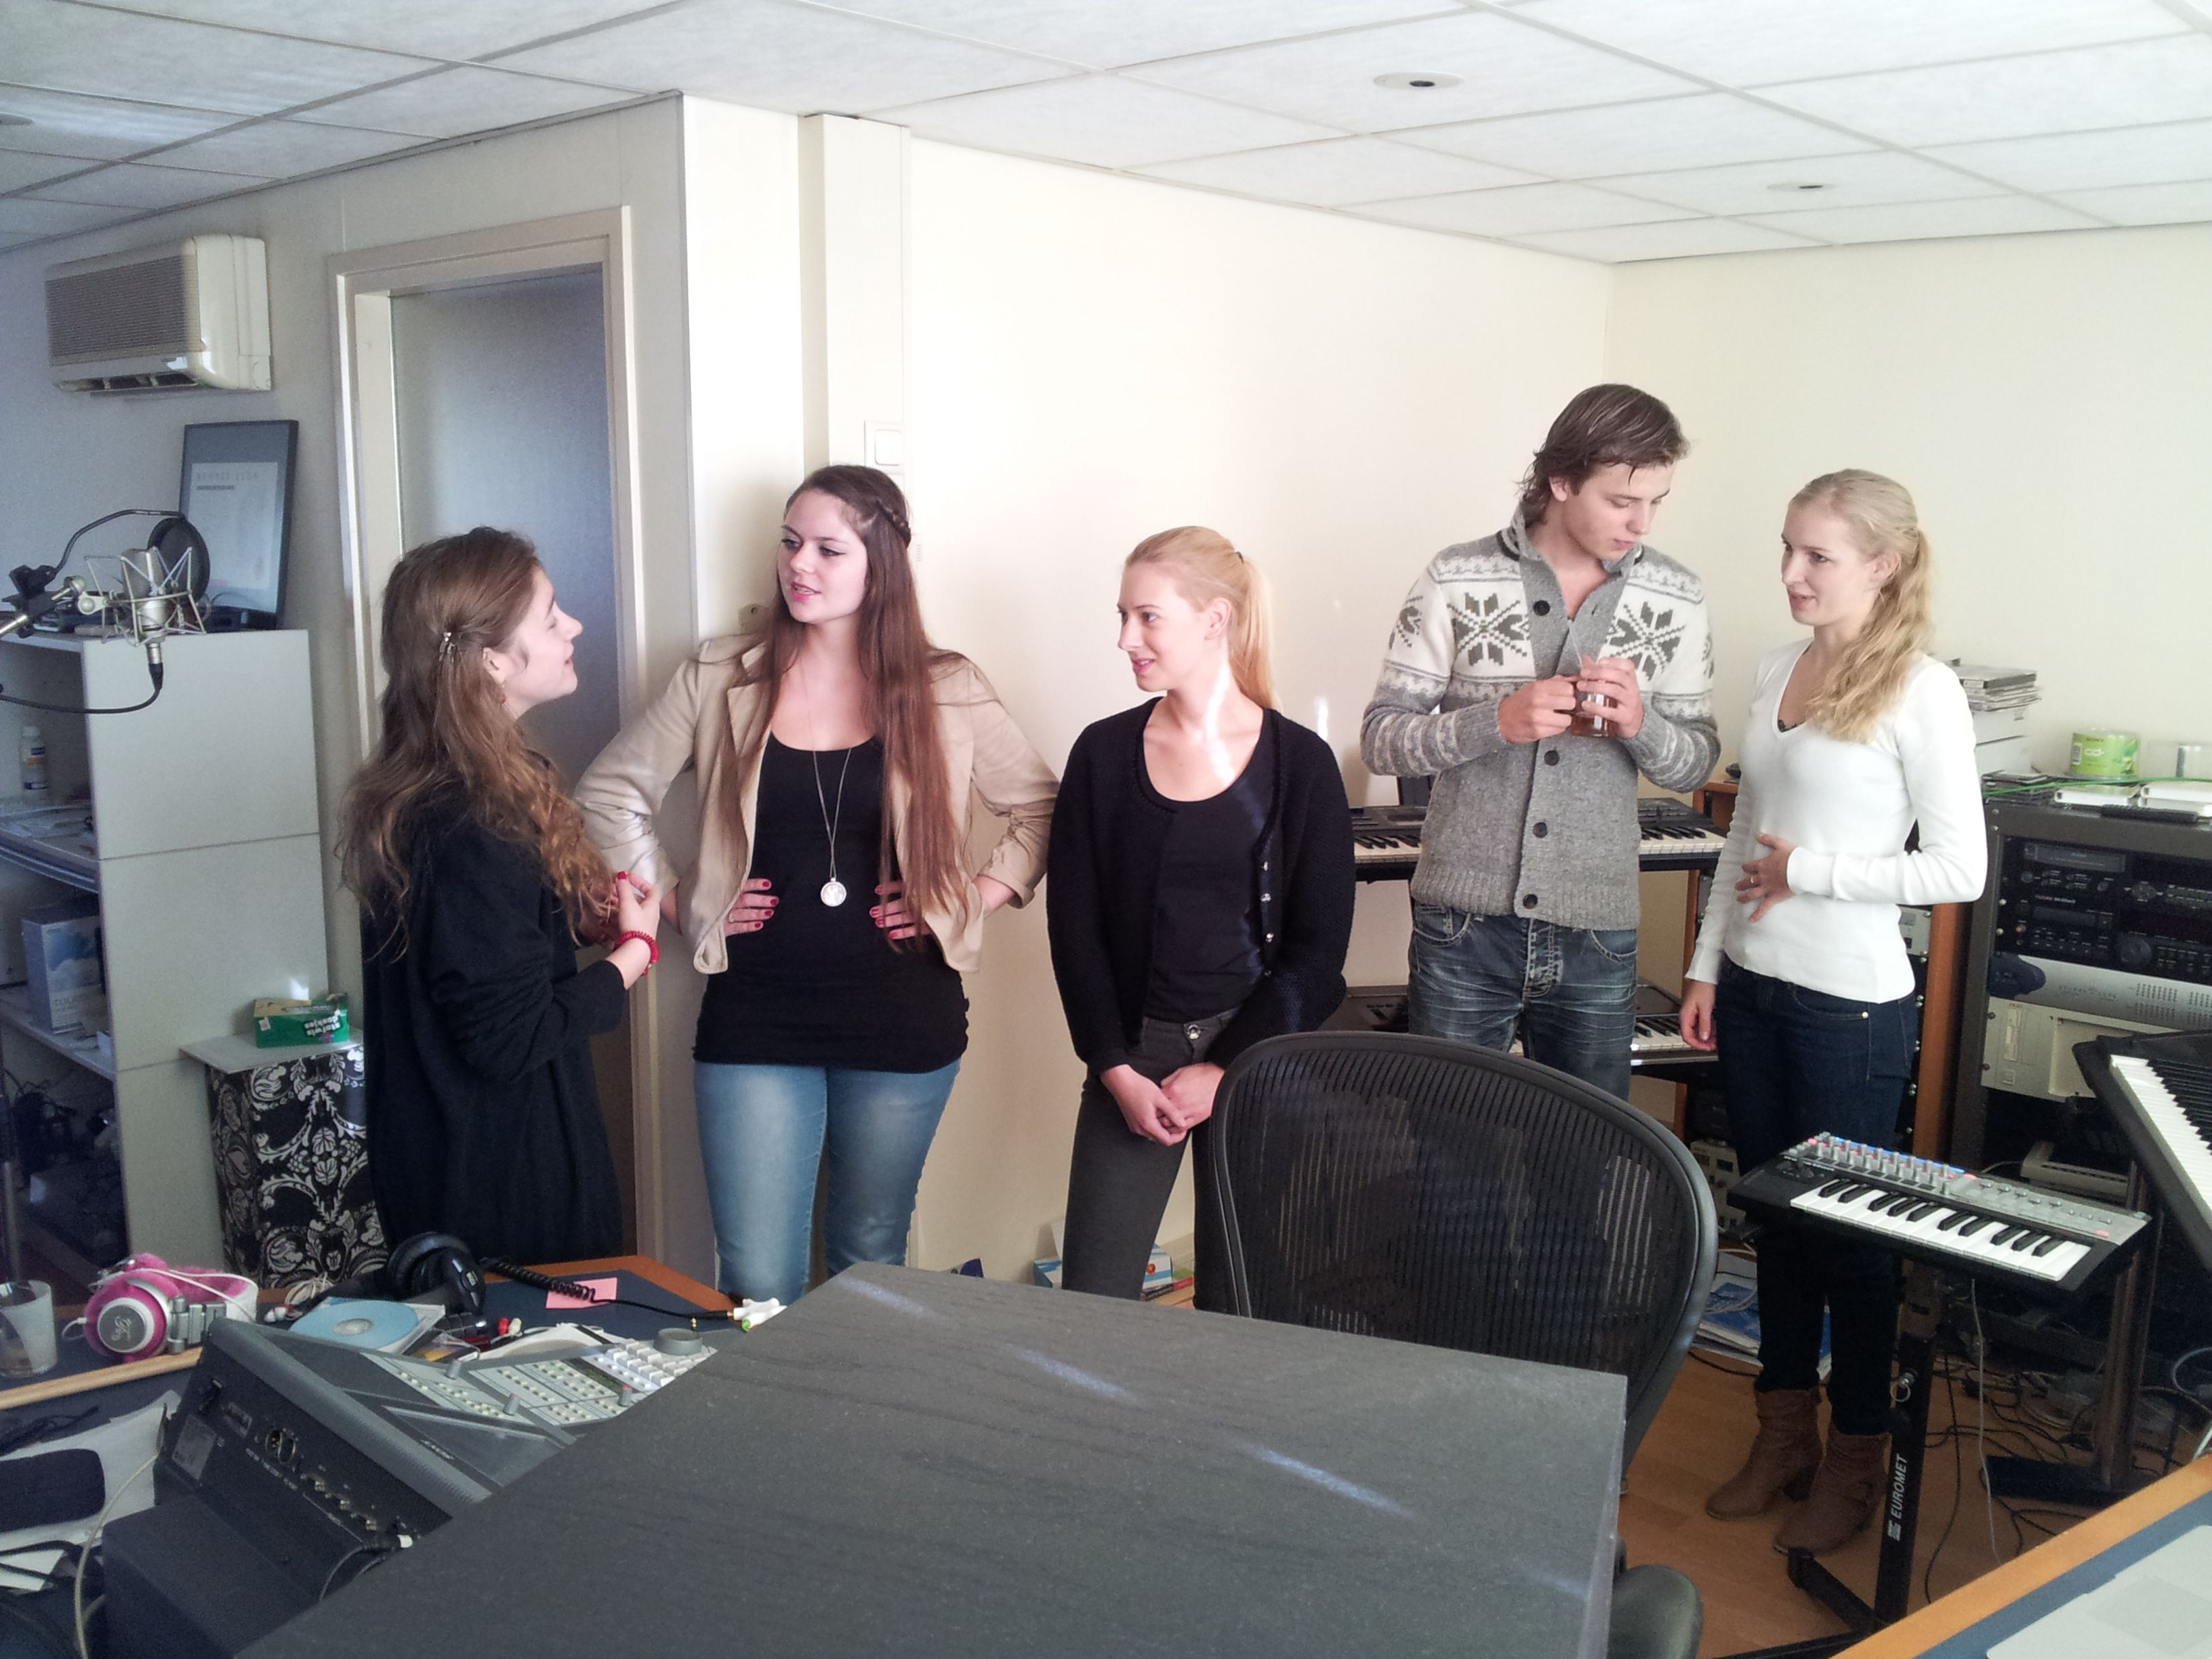 Giving instructions for the #harmony #vocals. #music #group #friends #popular